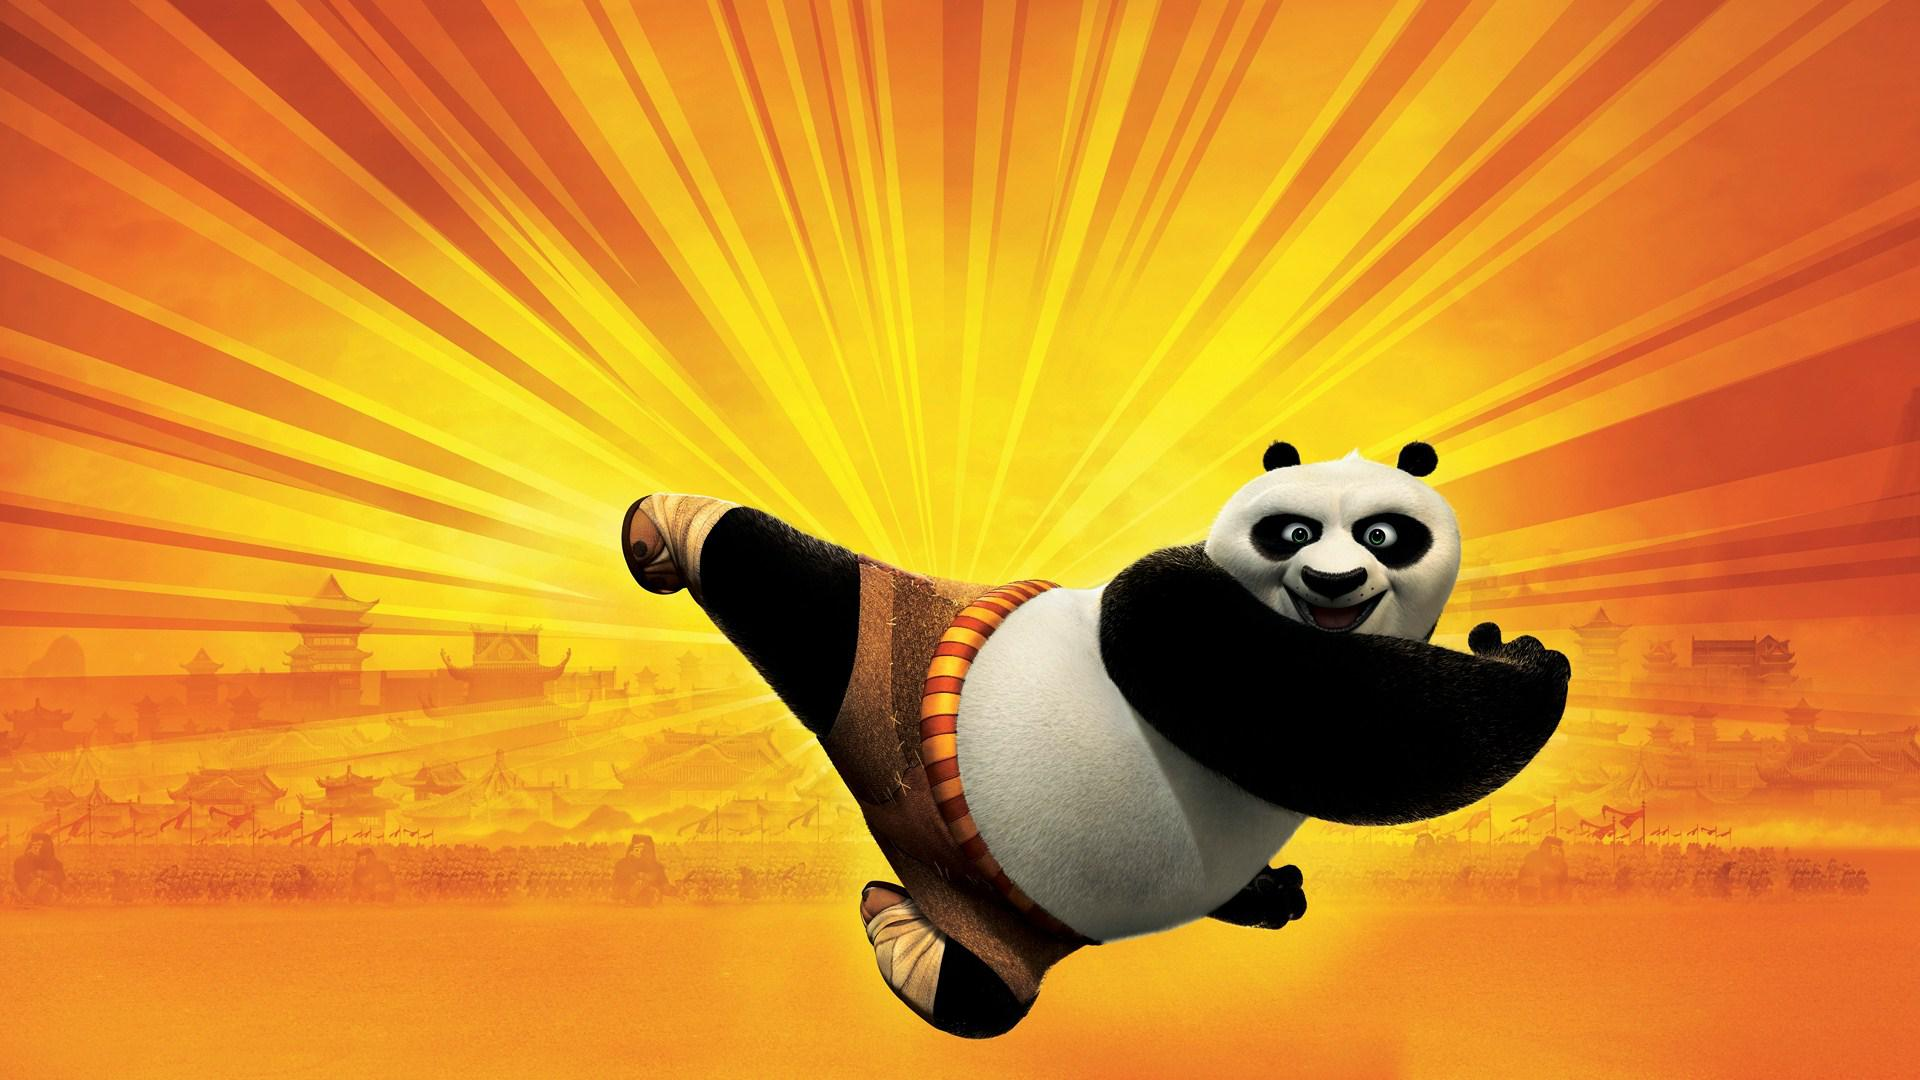 3rd Marine Aircraft Wing Kung fu panda pictures free download